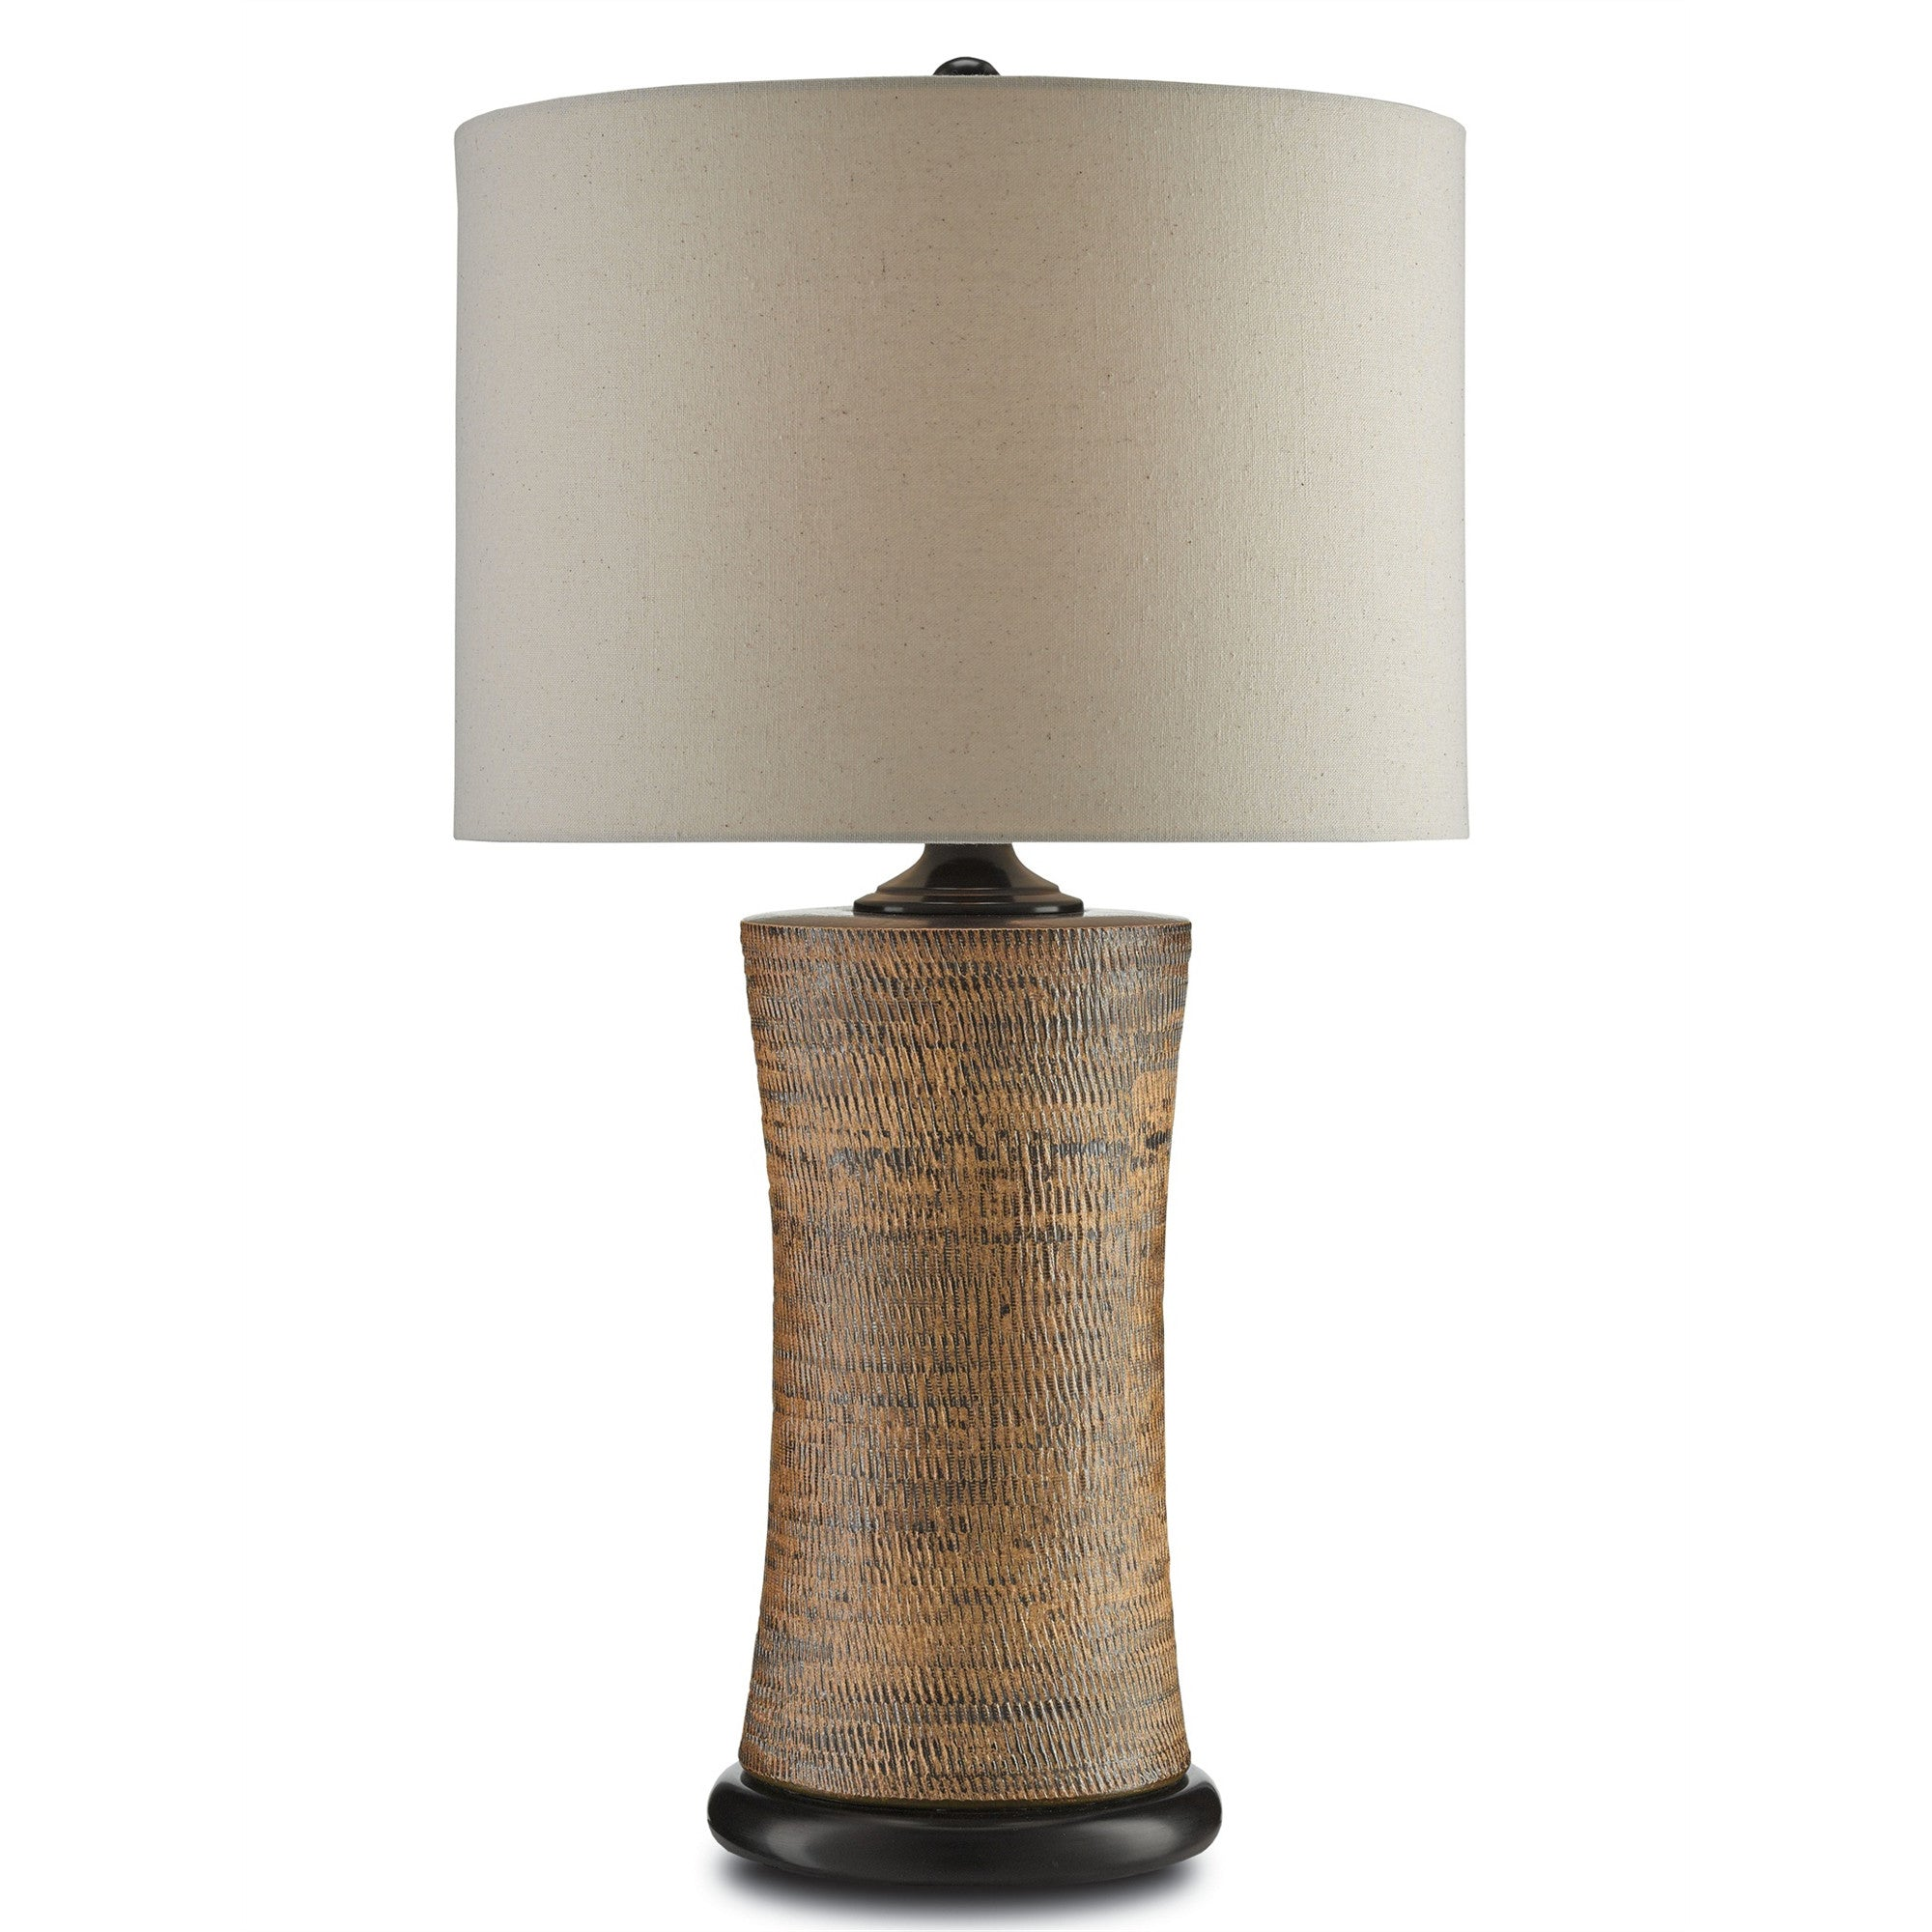 Currey and Co - Malabar Table Lamp